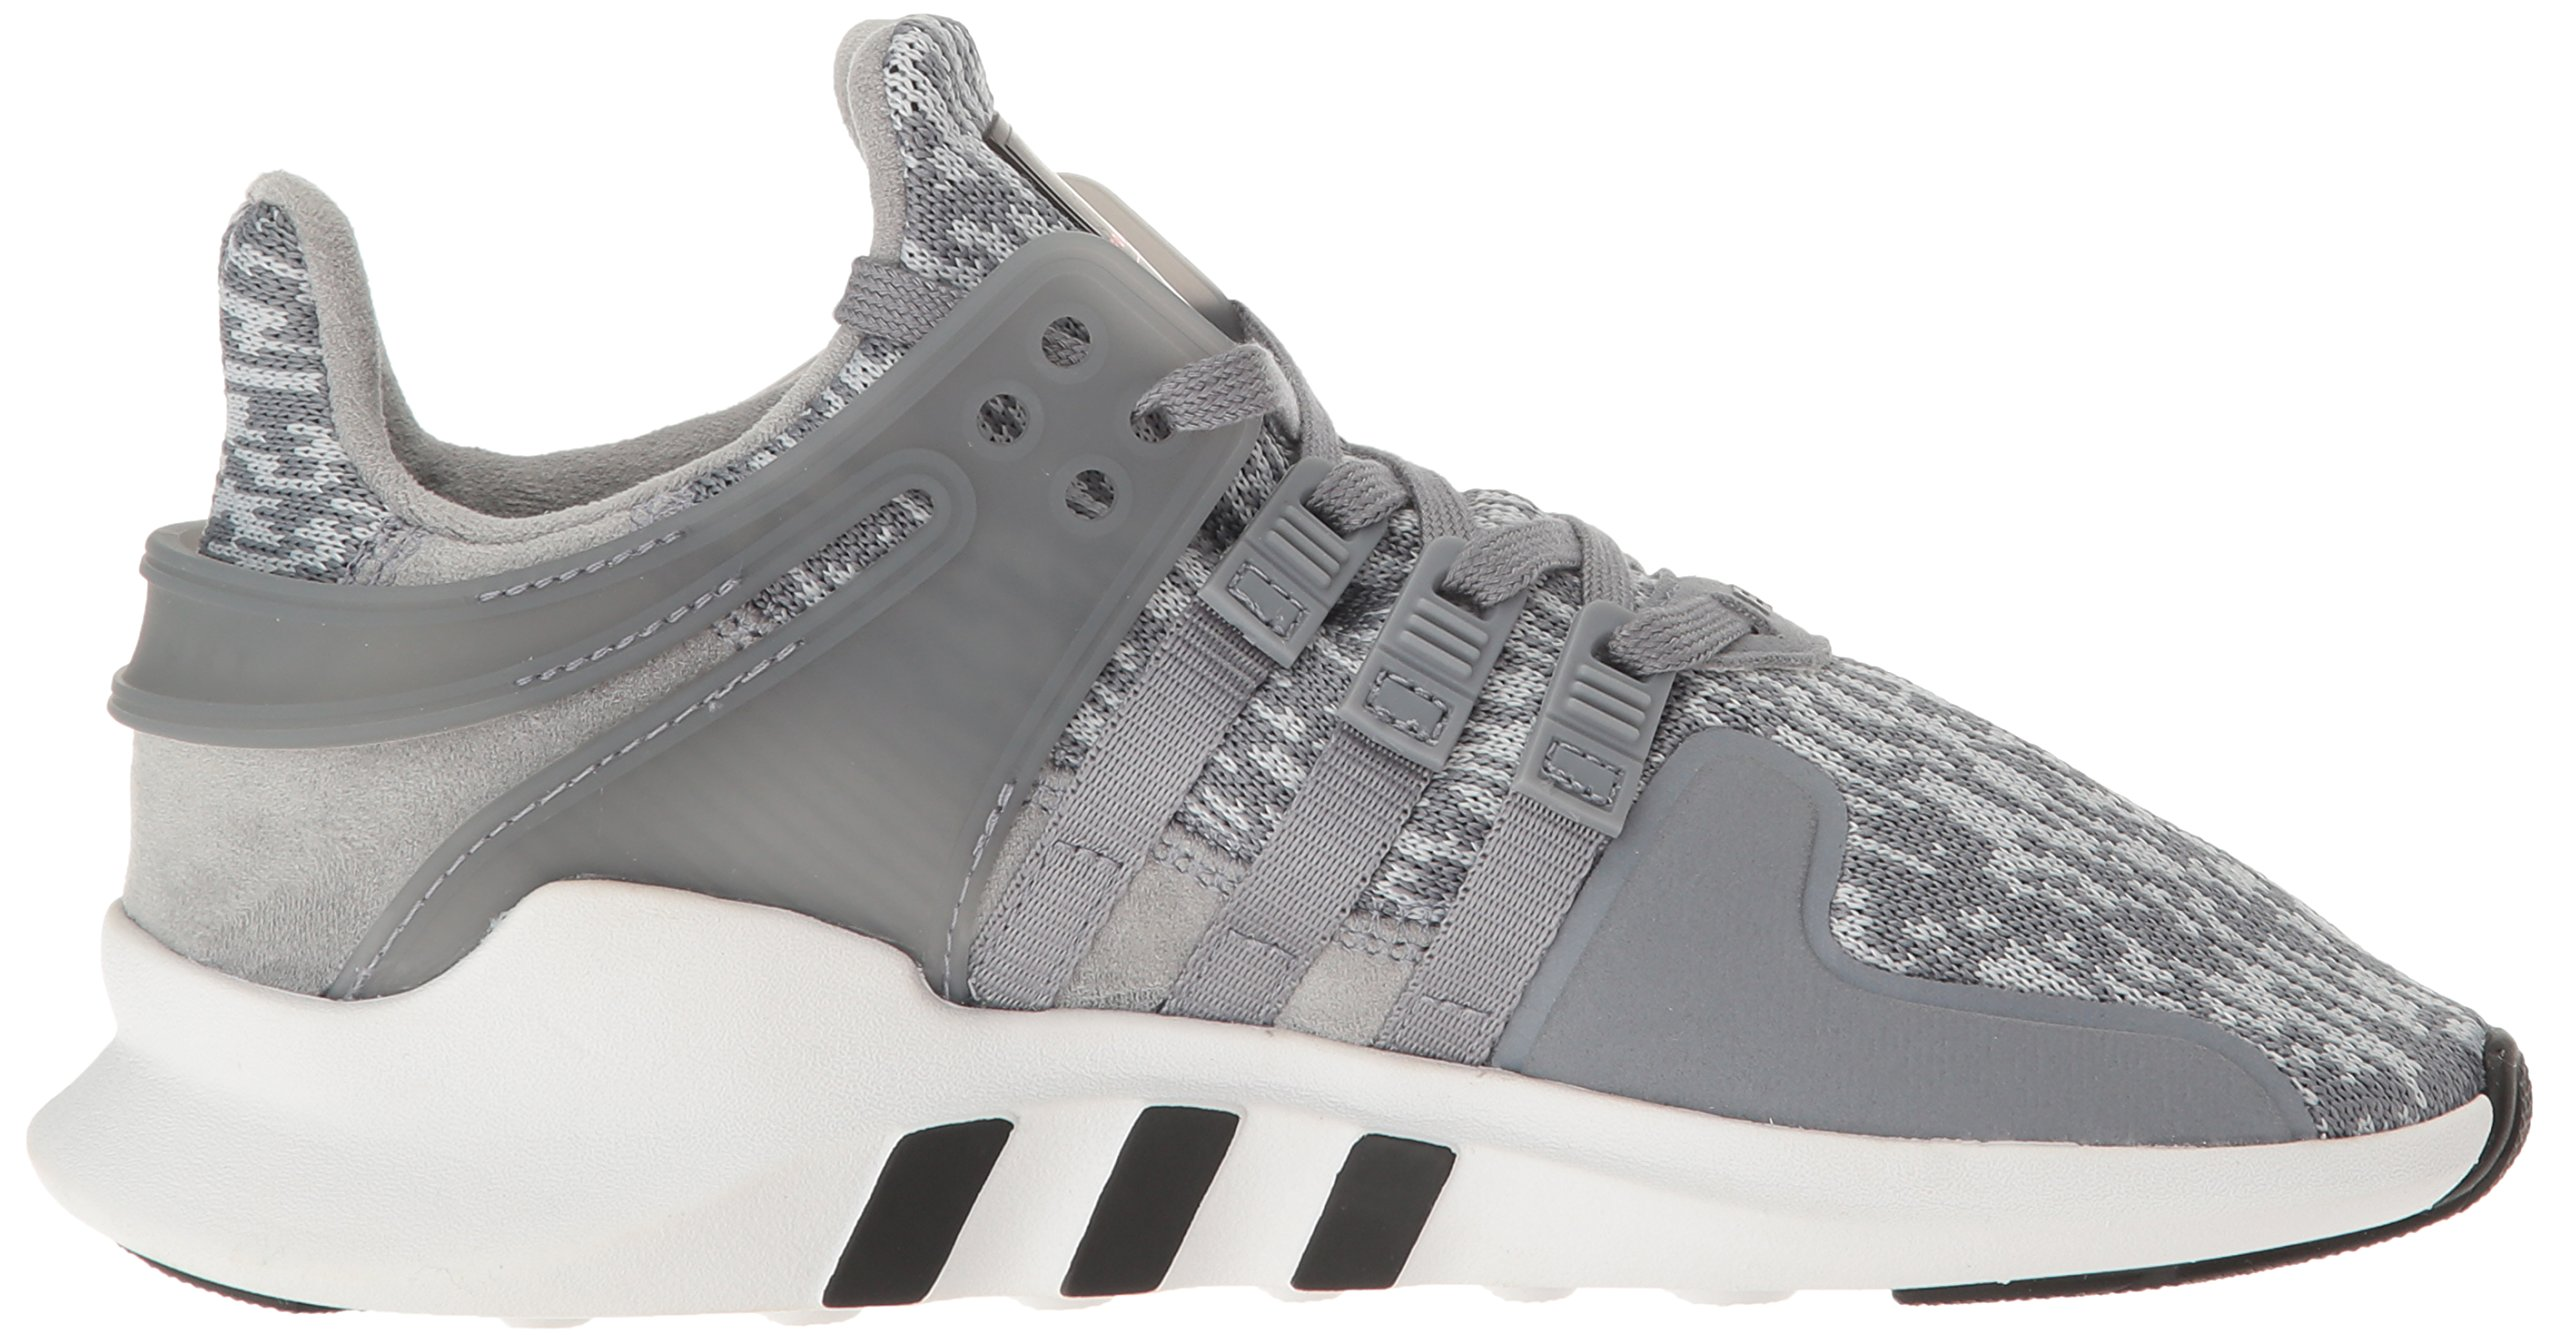 adidas Originals Boys' EQT Support ADV J Running Shoe, Tech Grey/White, 5.5 M US Big Kid by adidas Originals (Image #7)